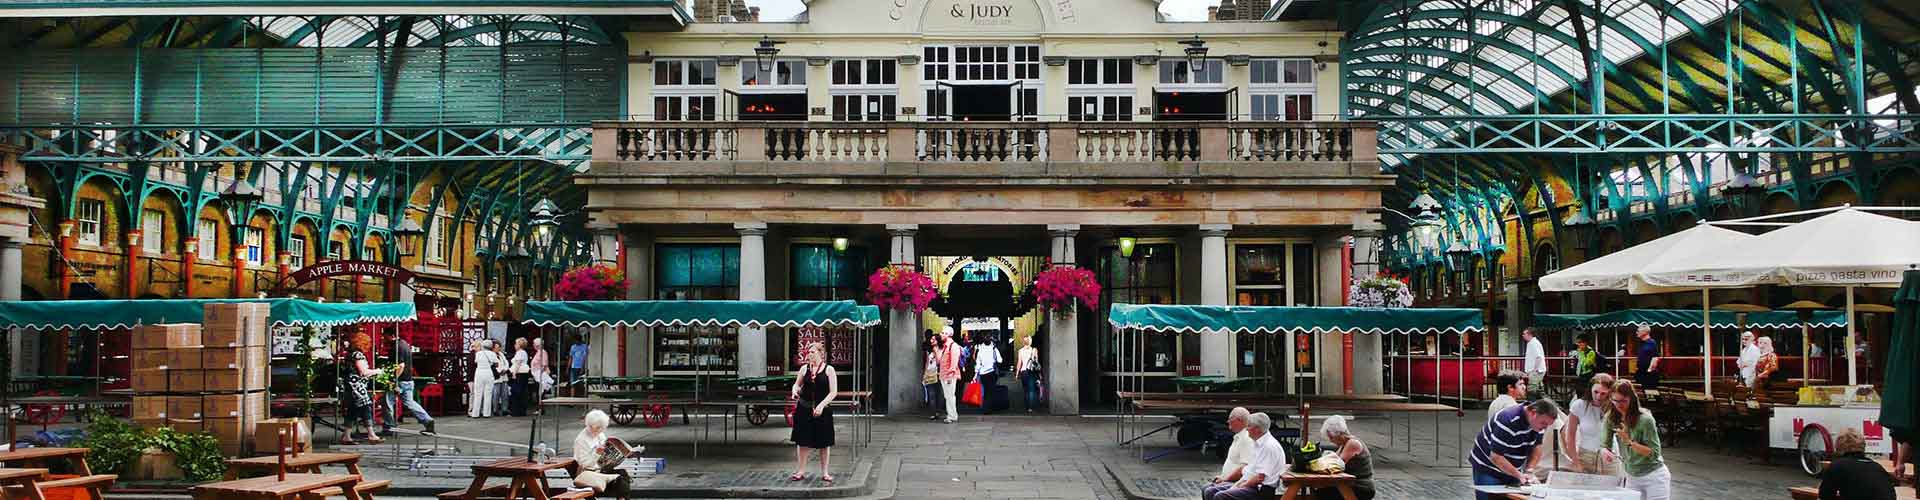 London – Hostels close to Covent Garden Piazza. Maps for London, Photos and Reviews for each hostel in London.